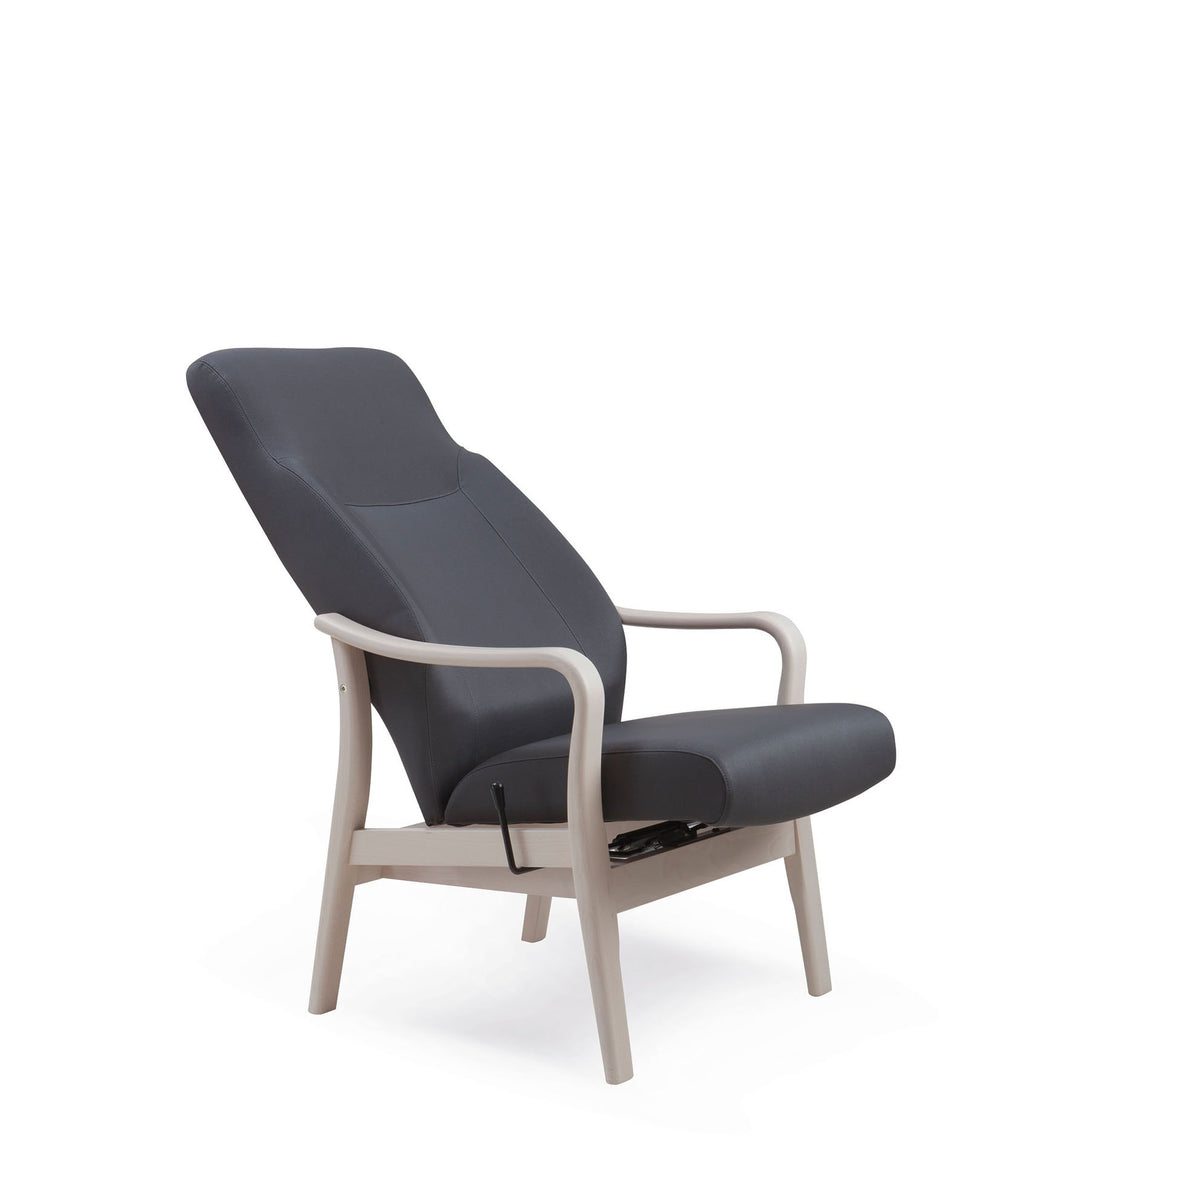 Relax Elegance 16-62/1R Lounge Chair-Piaval-Contract Furniture Store